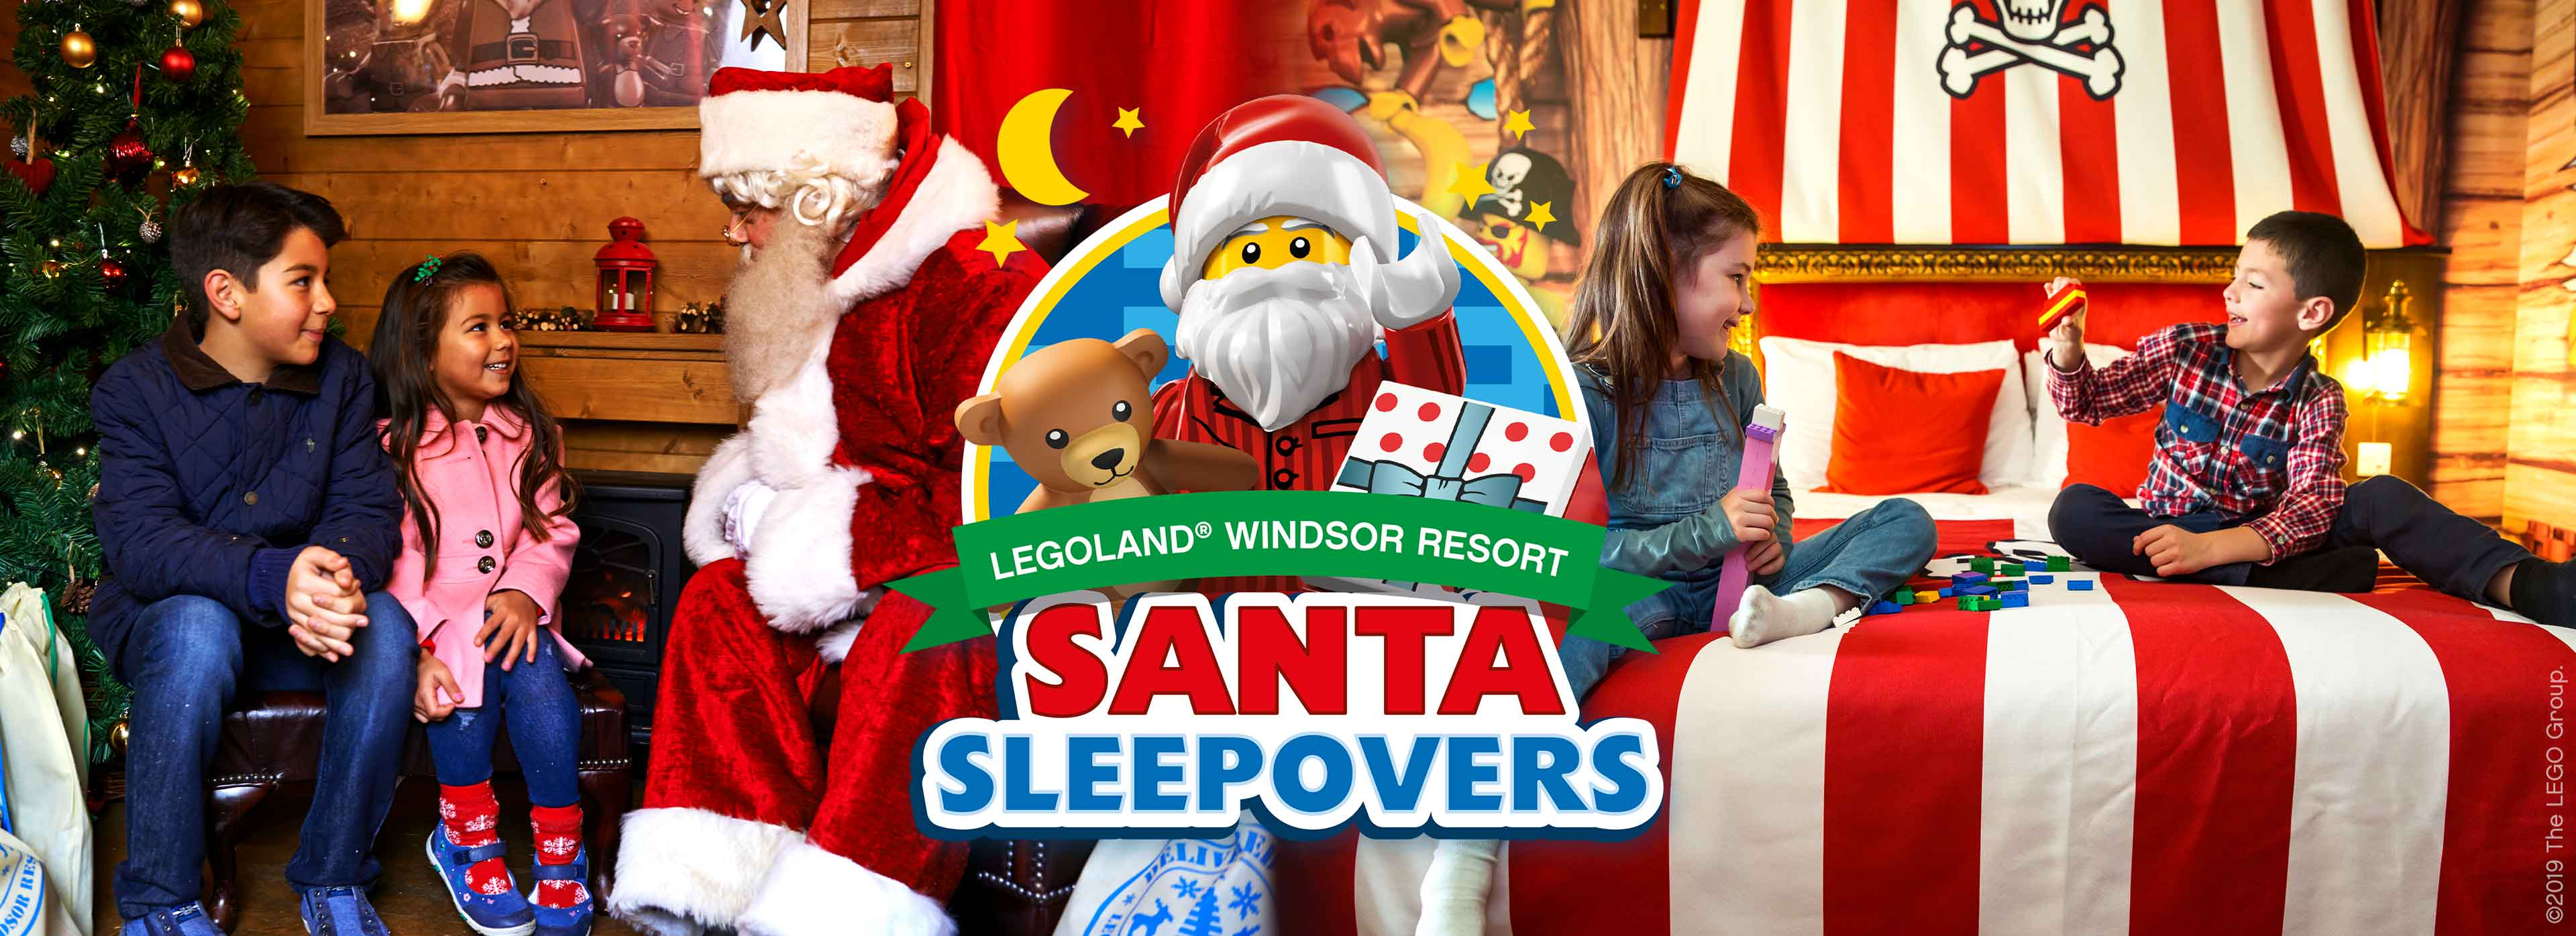 Santa Sleepover 2019 at LEGOLAND Windsor Resort